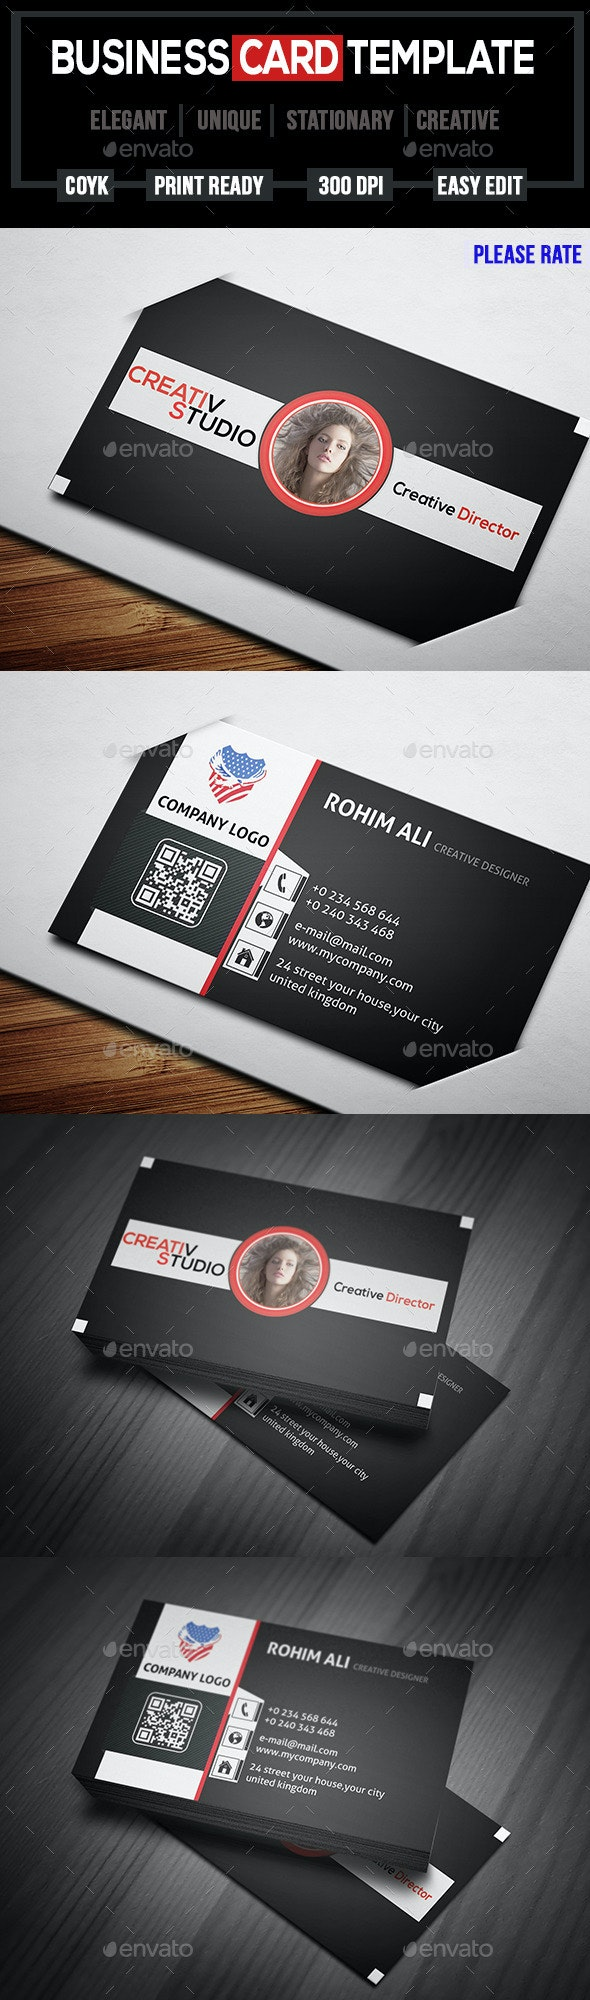 Corporate Business Card-10 - Creative Business Cards